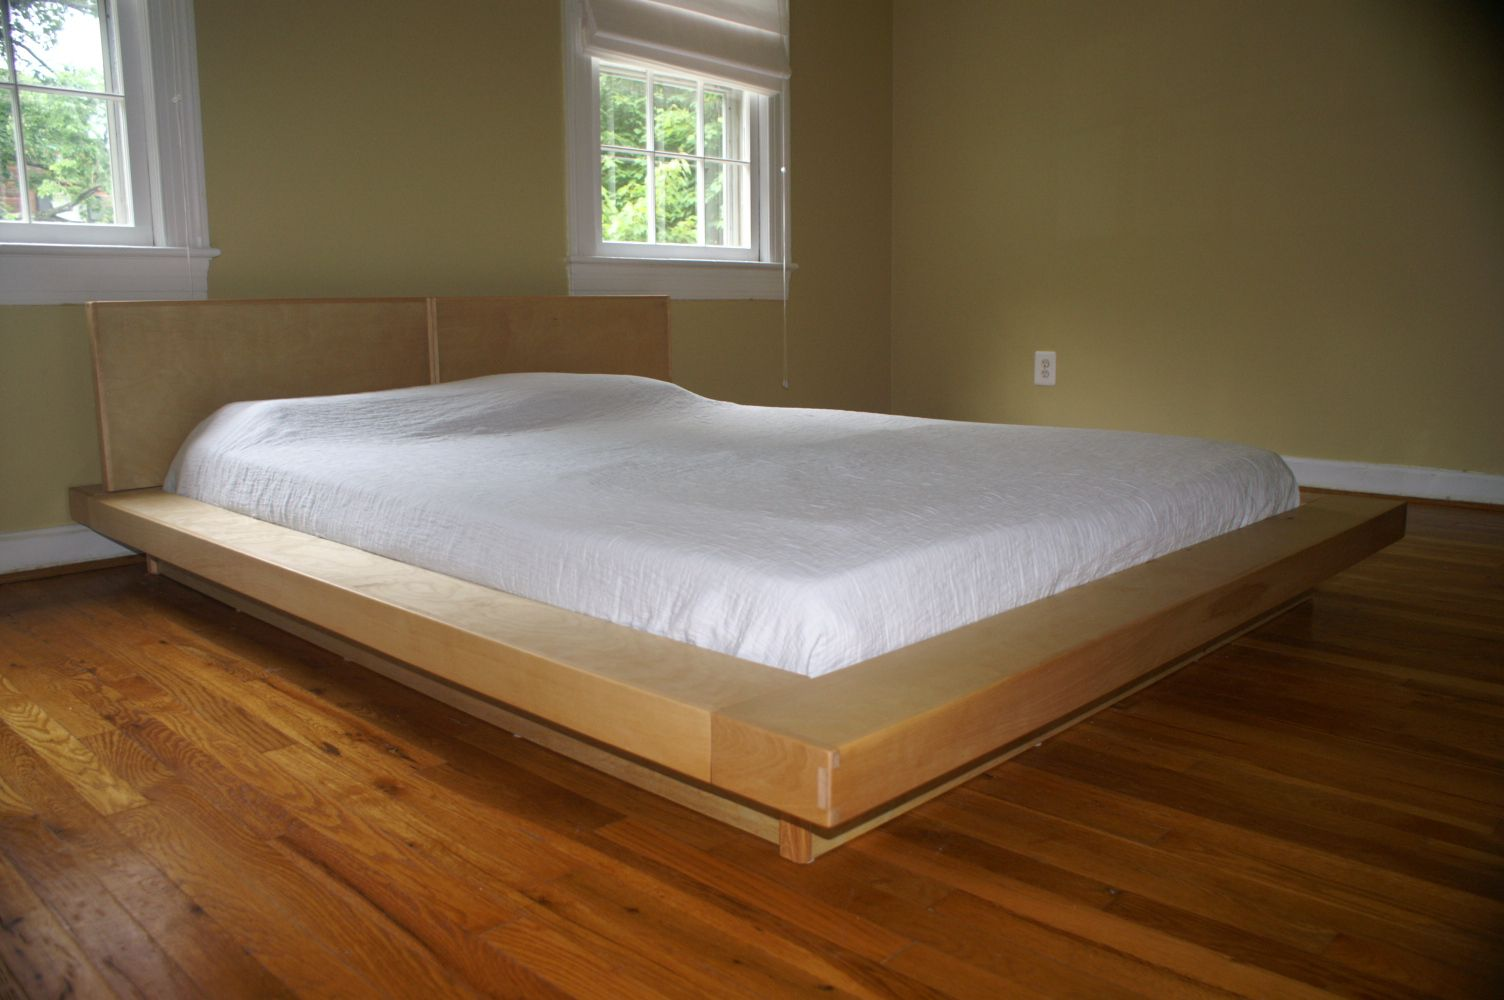 platform beds honey wood storage Google Search Bed